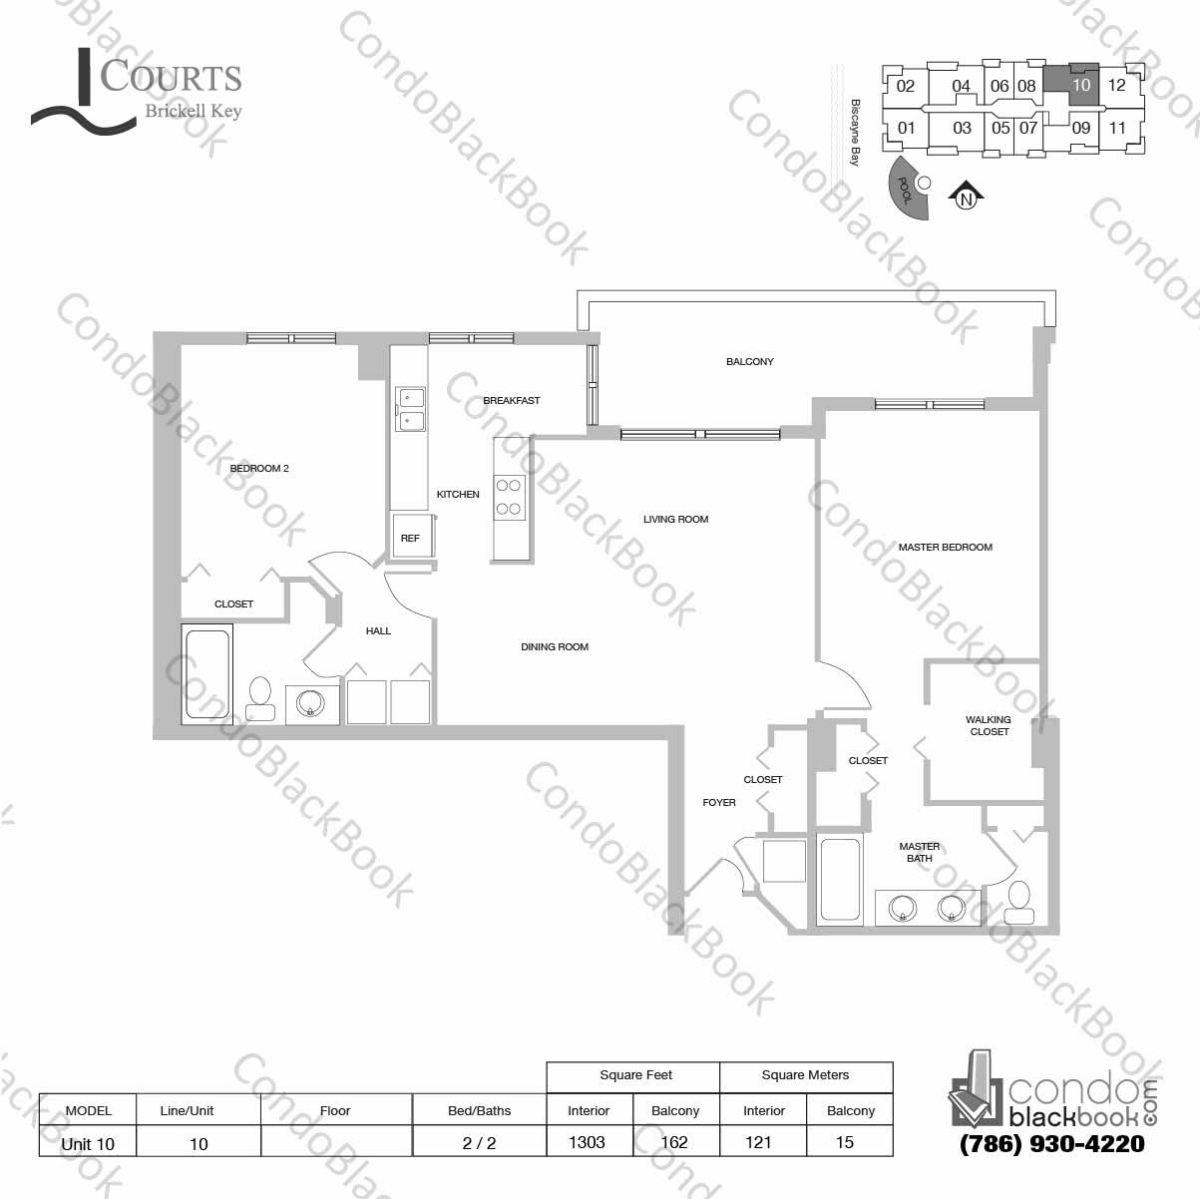 Floor plan for Courts Condo Brickell Key Brickell Key Miami, model Unit 10, line 10, 2 / 2 bedrooms, 1303 sq ft